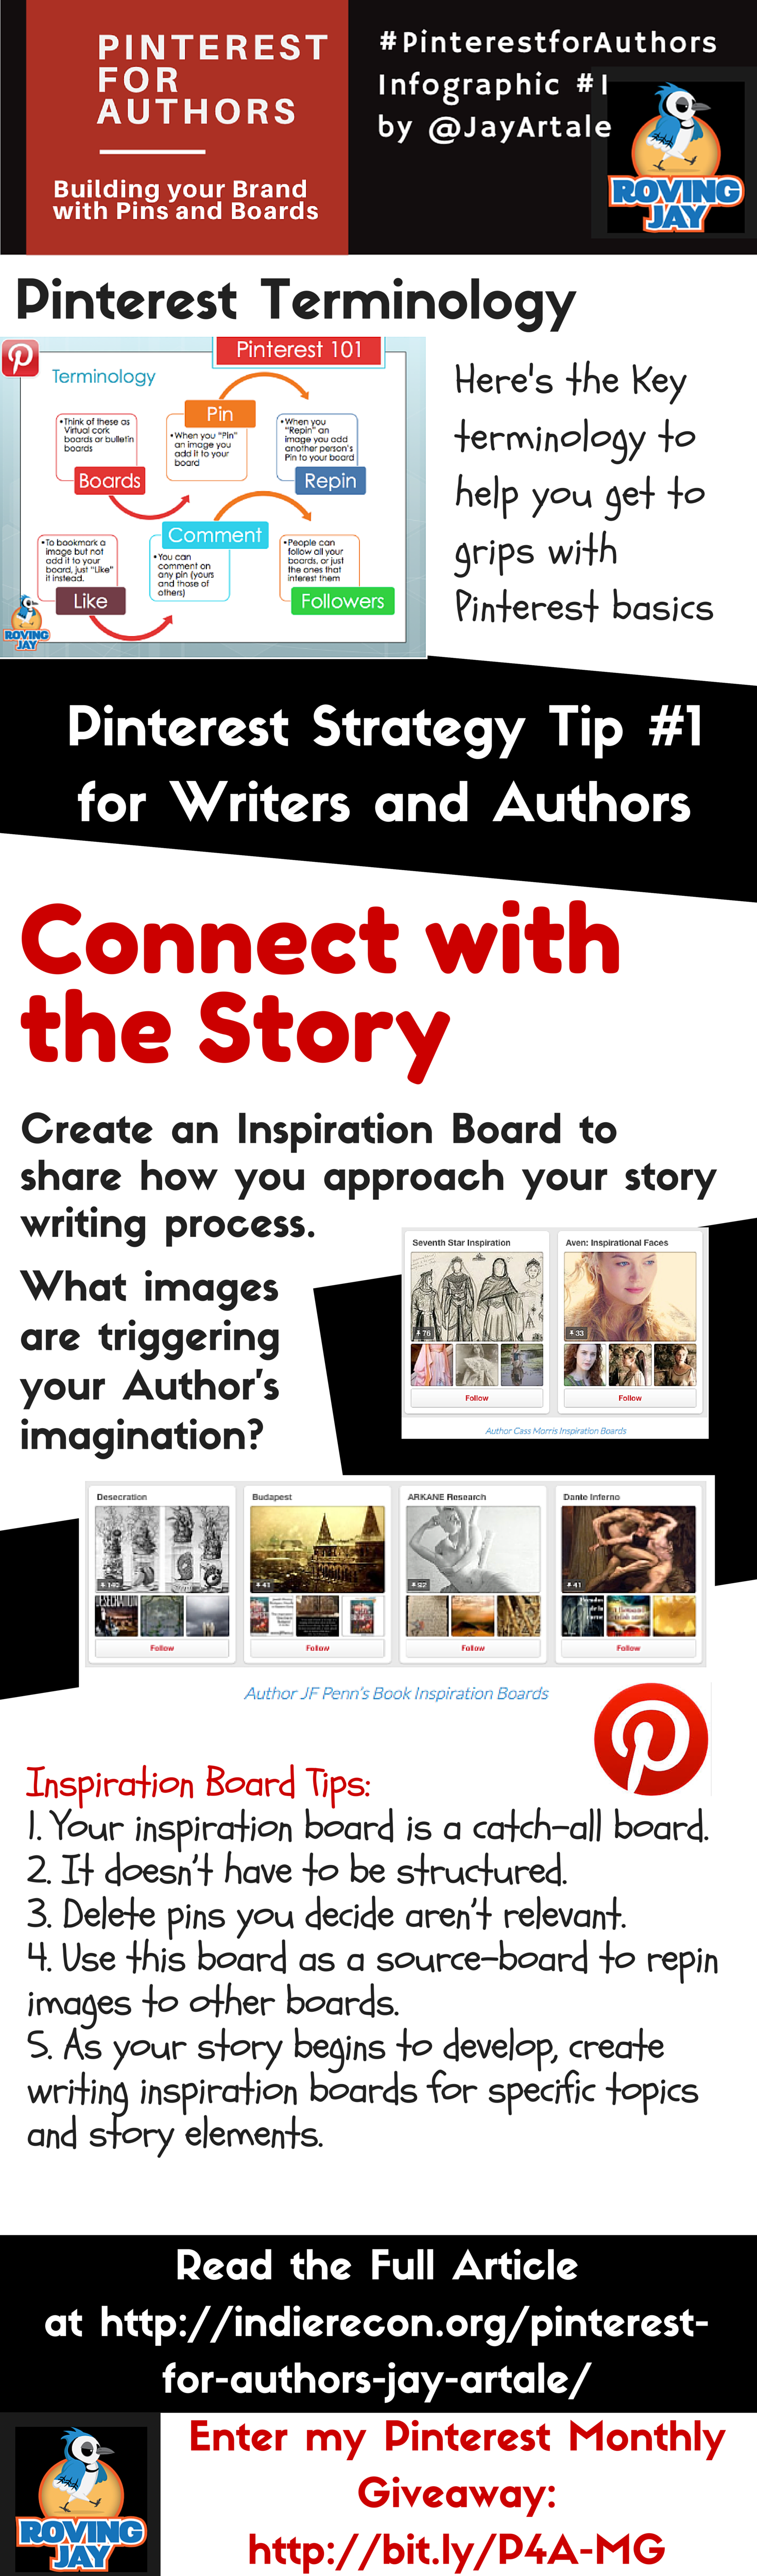 Pinterest for Authors Infographic #1 Jay Artale Connect with the Story